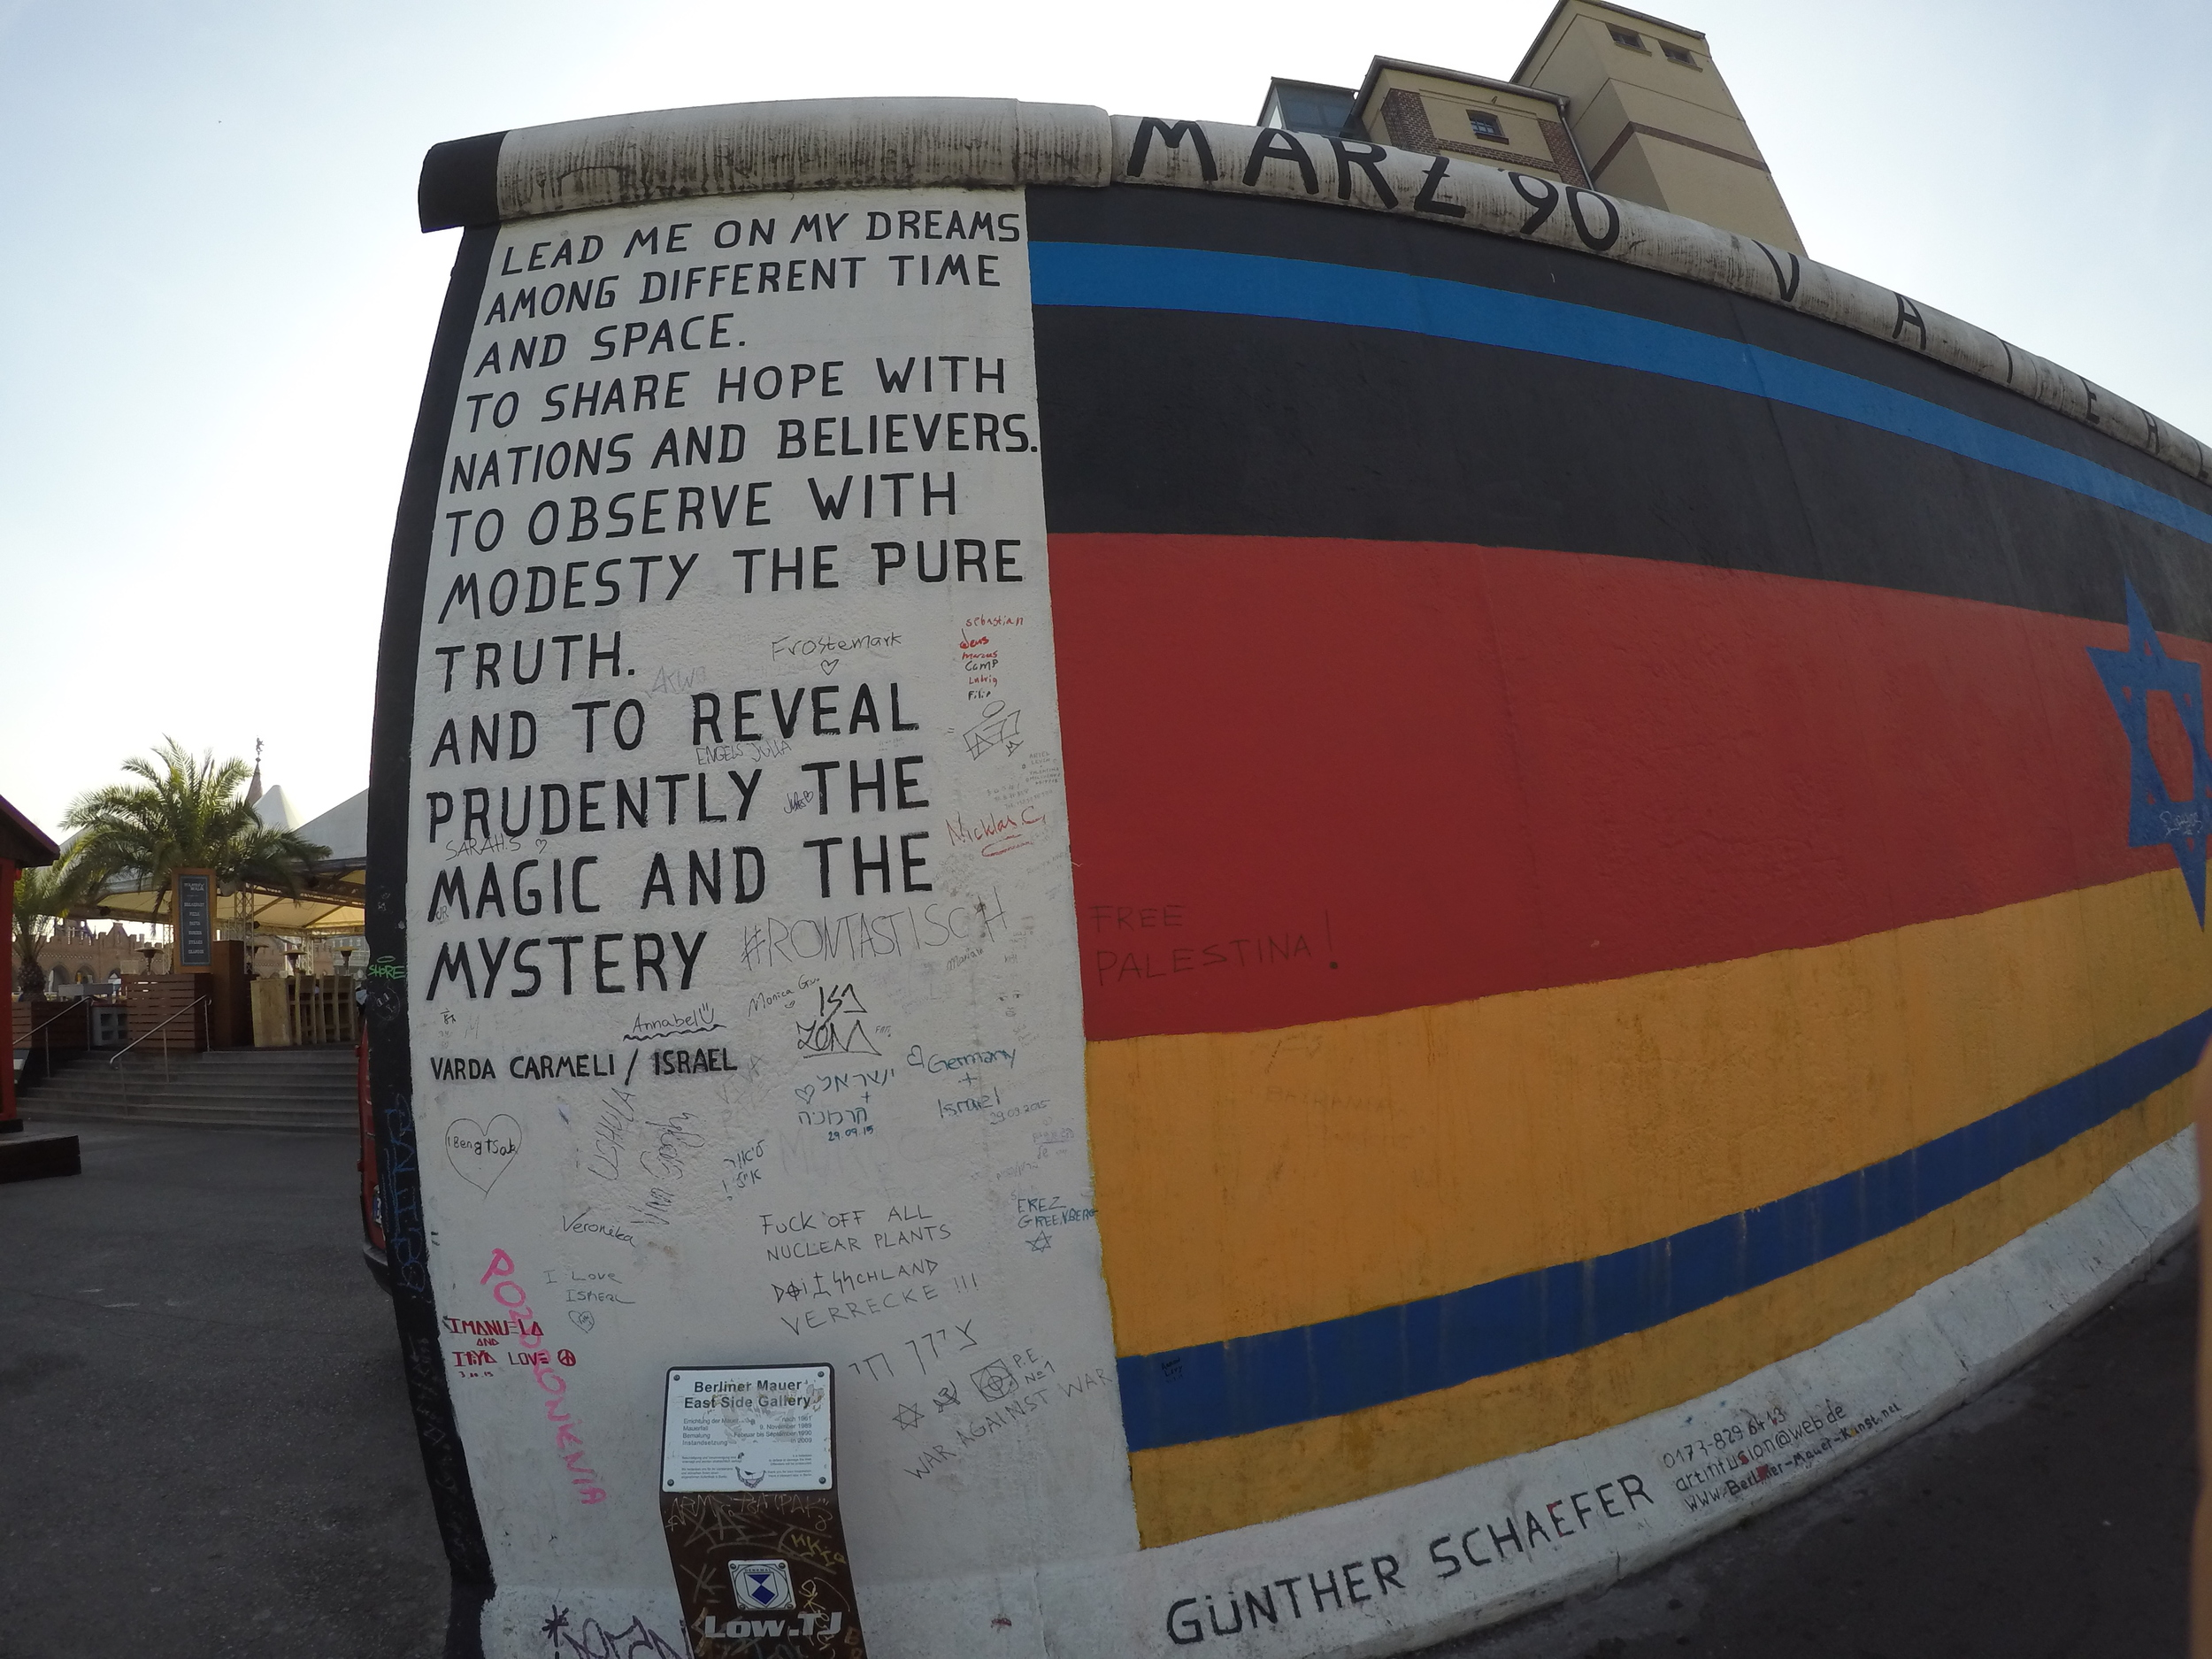 The Berlin wall, I took this picture while we walked along the wall earlier this month